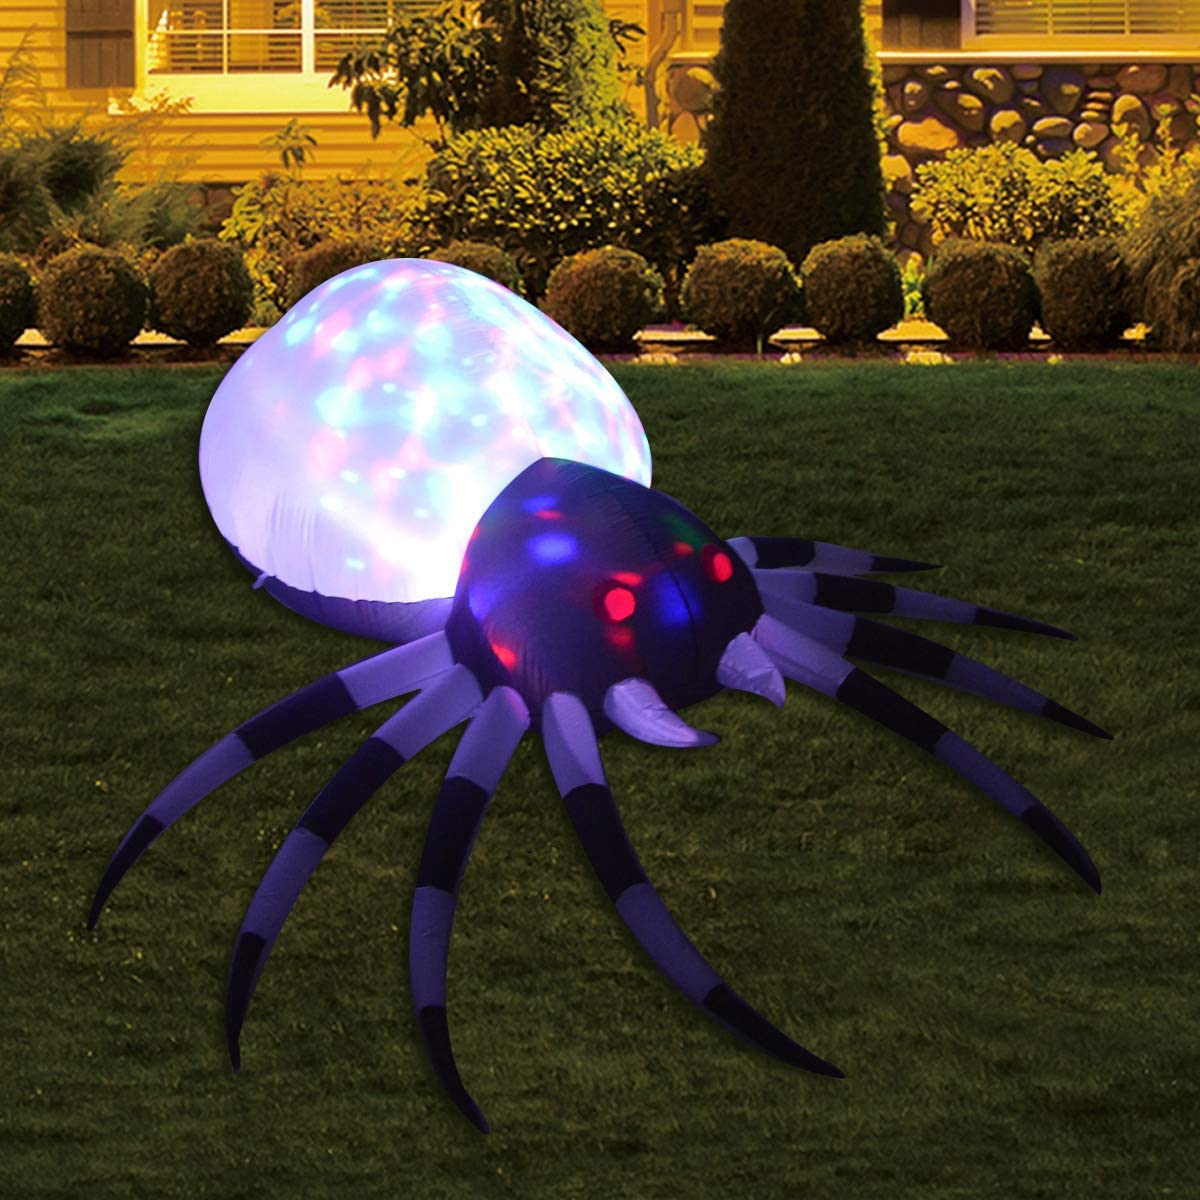 Spider Outdoor Inflatables